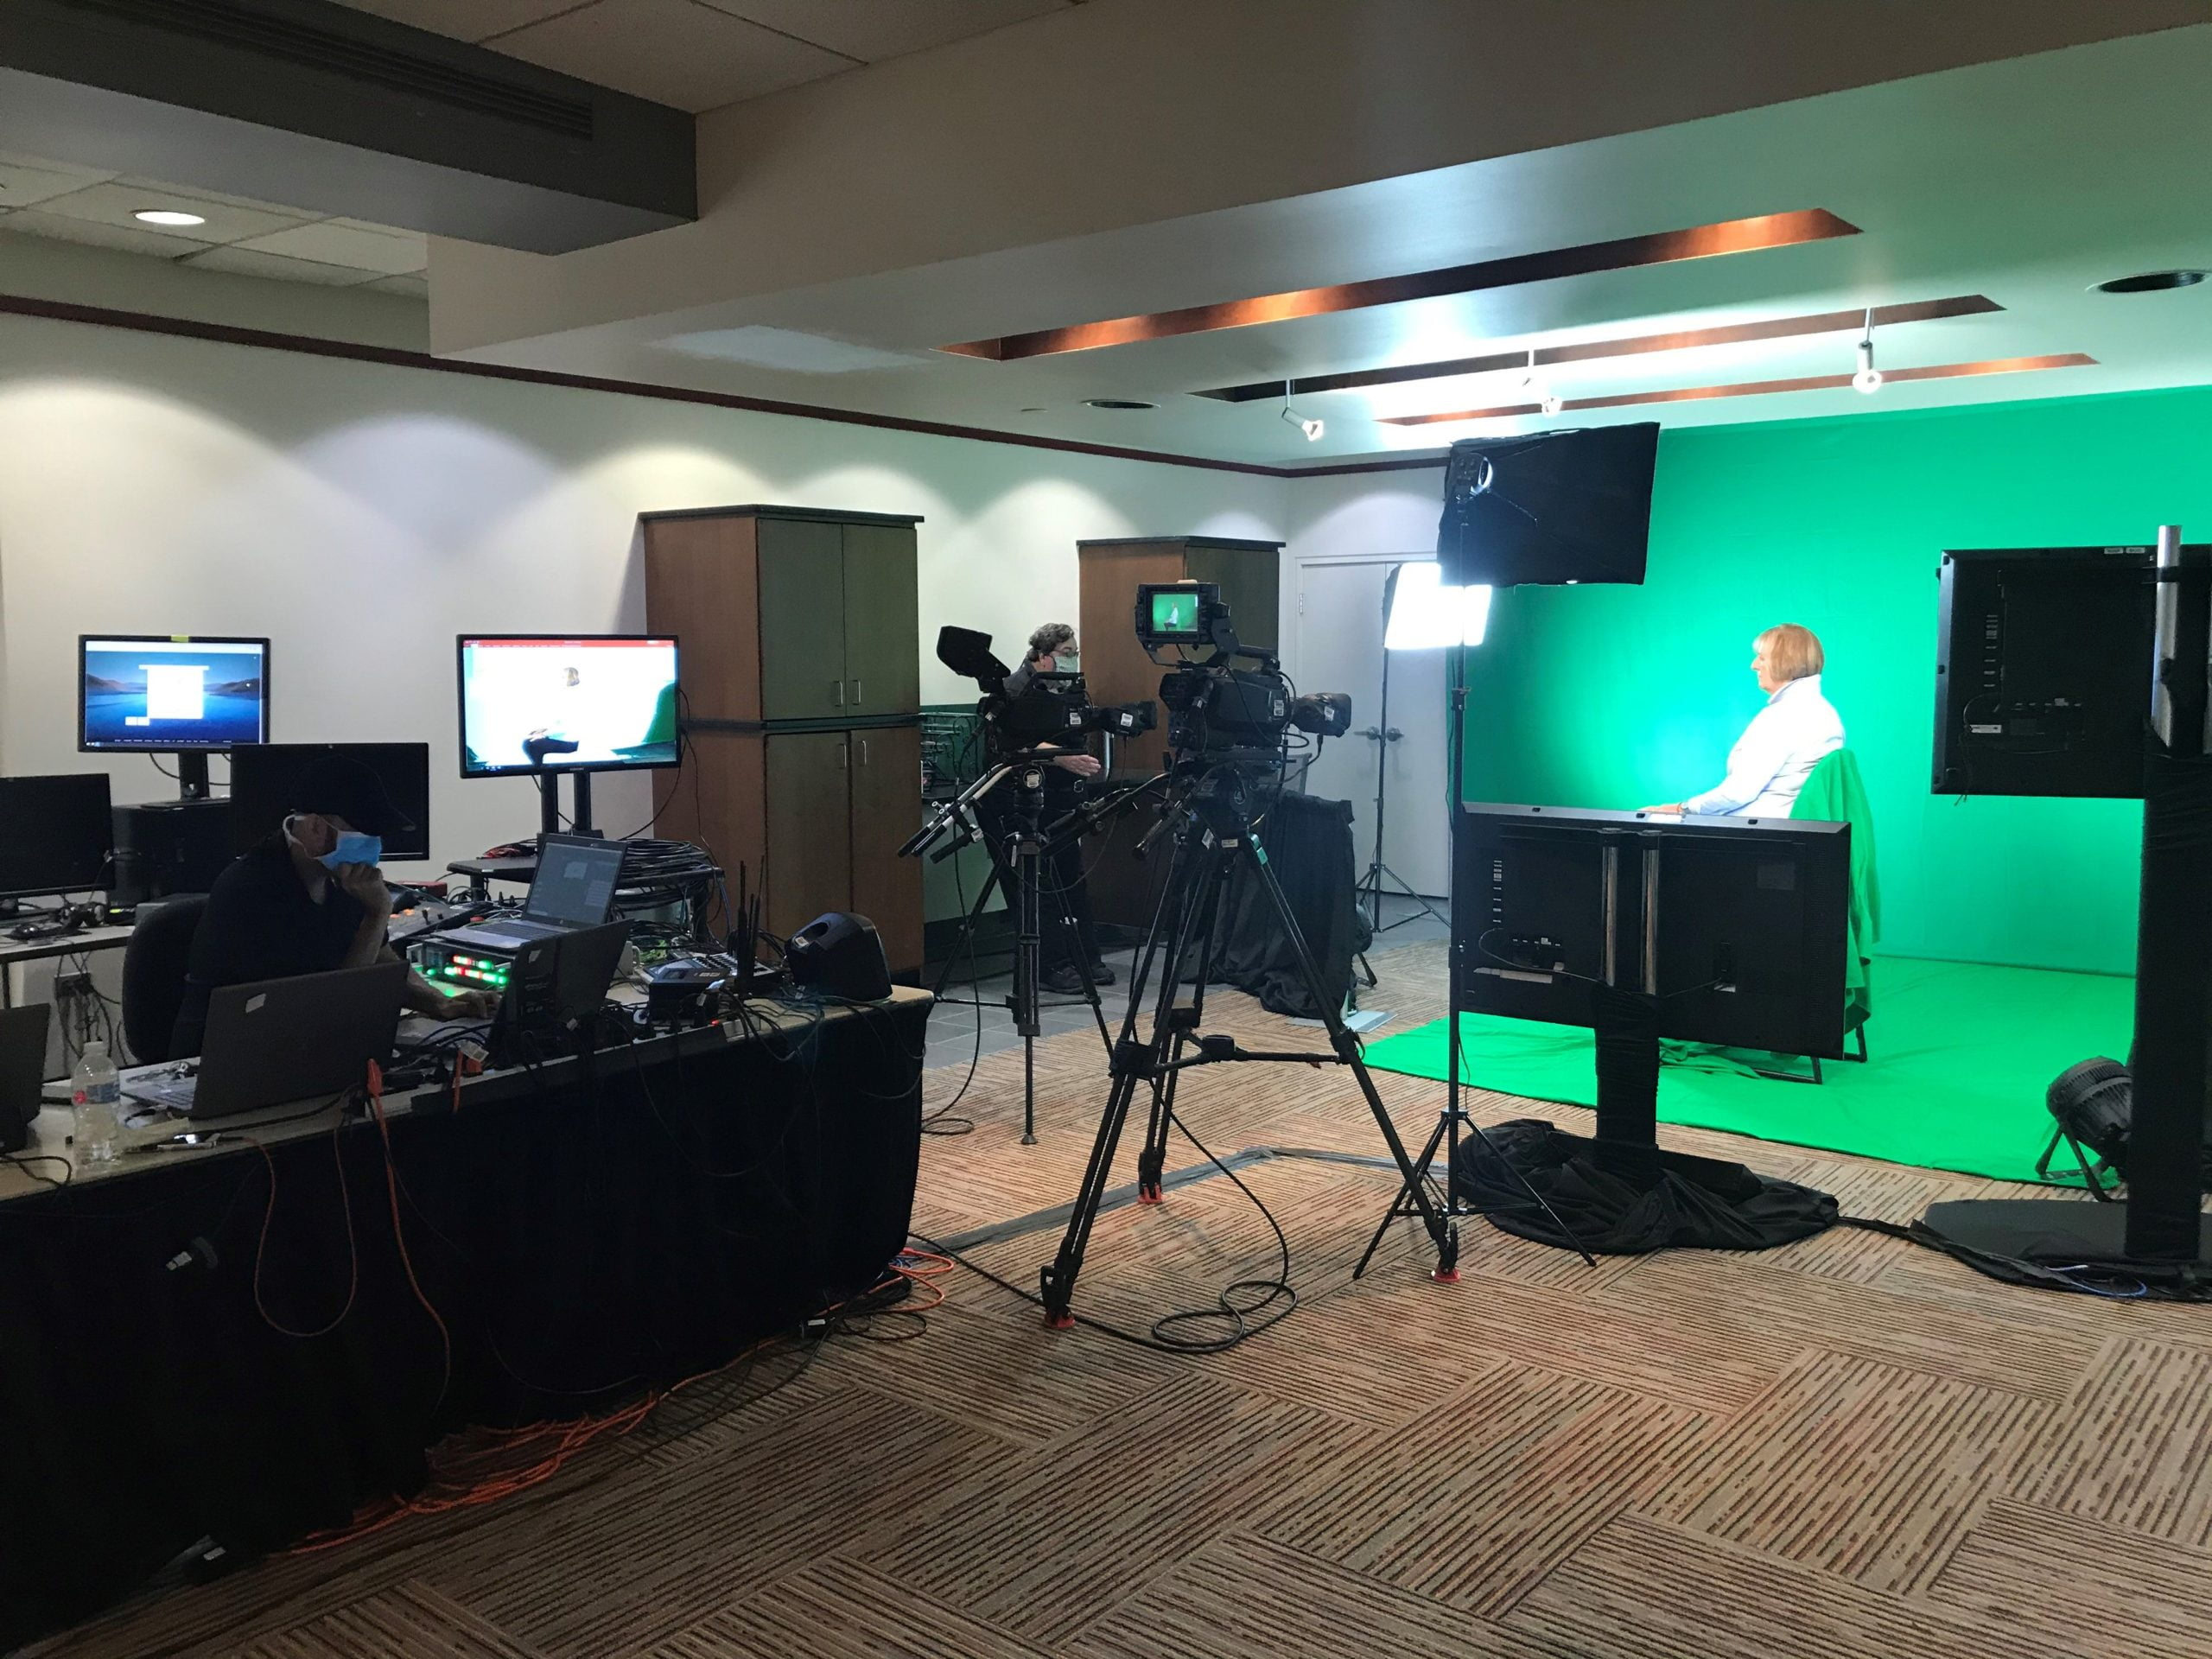 Baltimore Convention Center & Projection Debut Virtual Studio for IAEE CEM Week